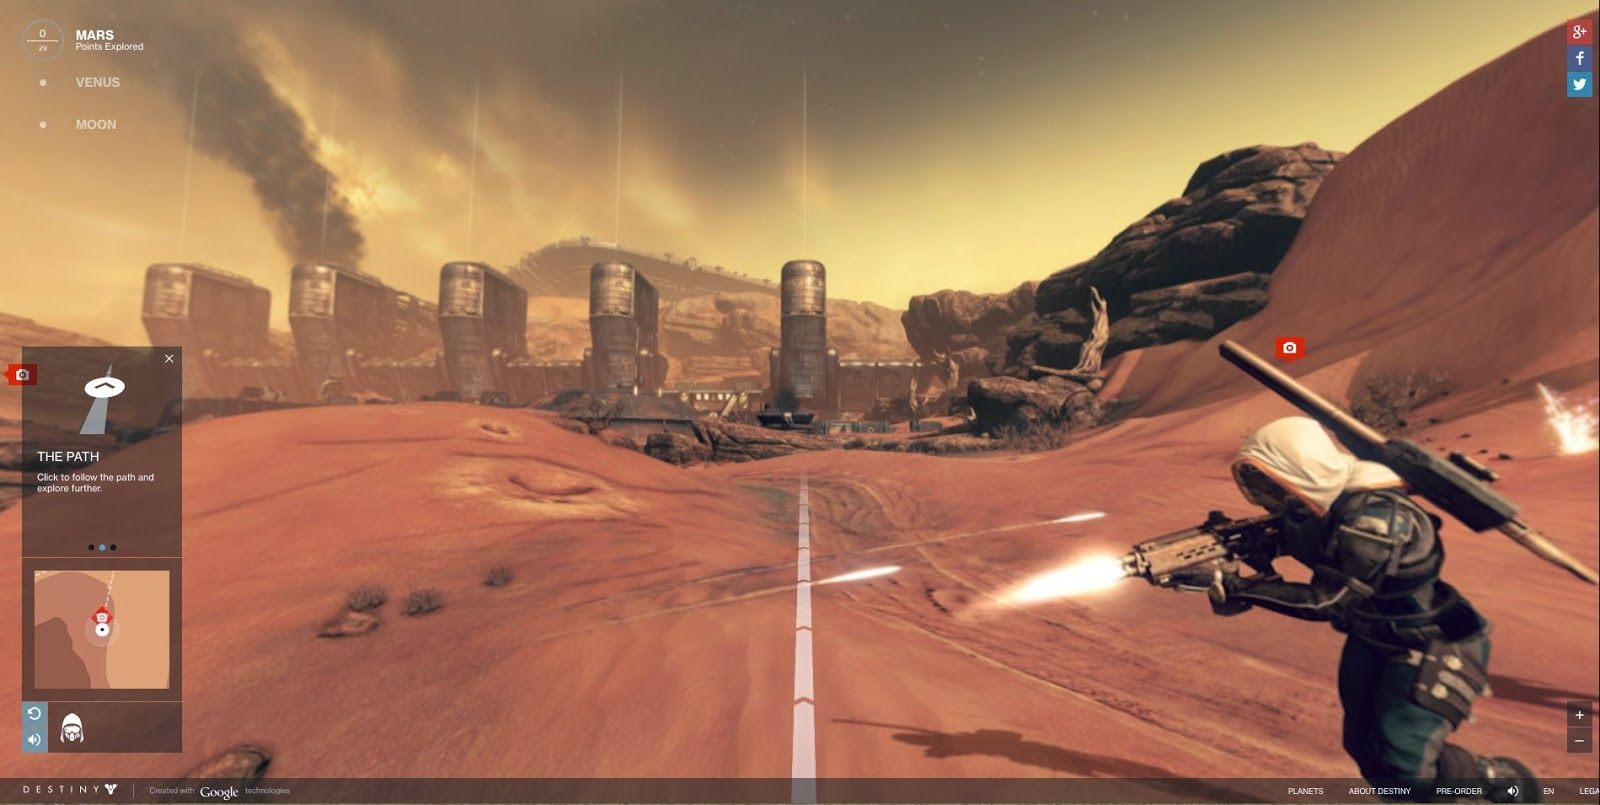 Explore-Destiny's-Planets-Using-Google-Street-View  Destiny Planet View allows gamers to explore other worlds like you would on our very own streets here on earth. This Google inspired Street view style explorer tool was developed by Activision as a way to promote the upcoming First Person Shooter.  #PS4Games #PlaystationGames #Playstation4Games #Destiny #DestinyPlanetView #GoogleStreetView